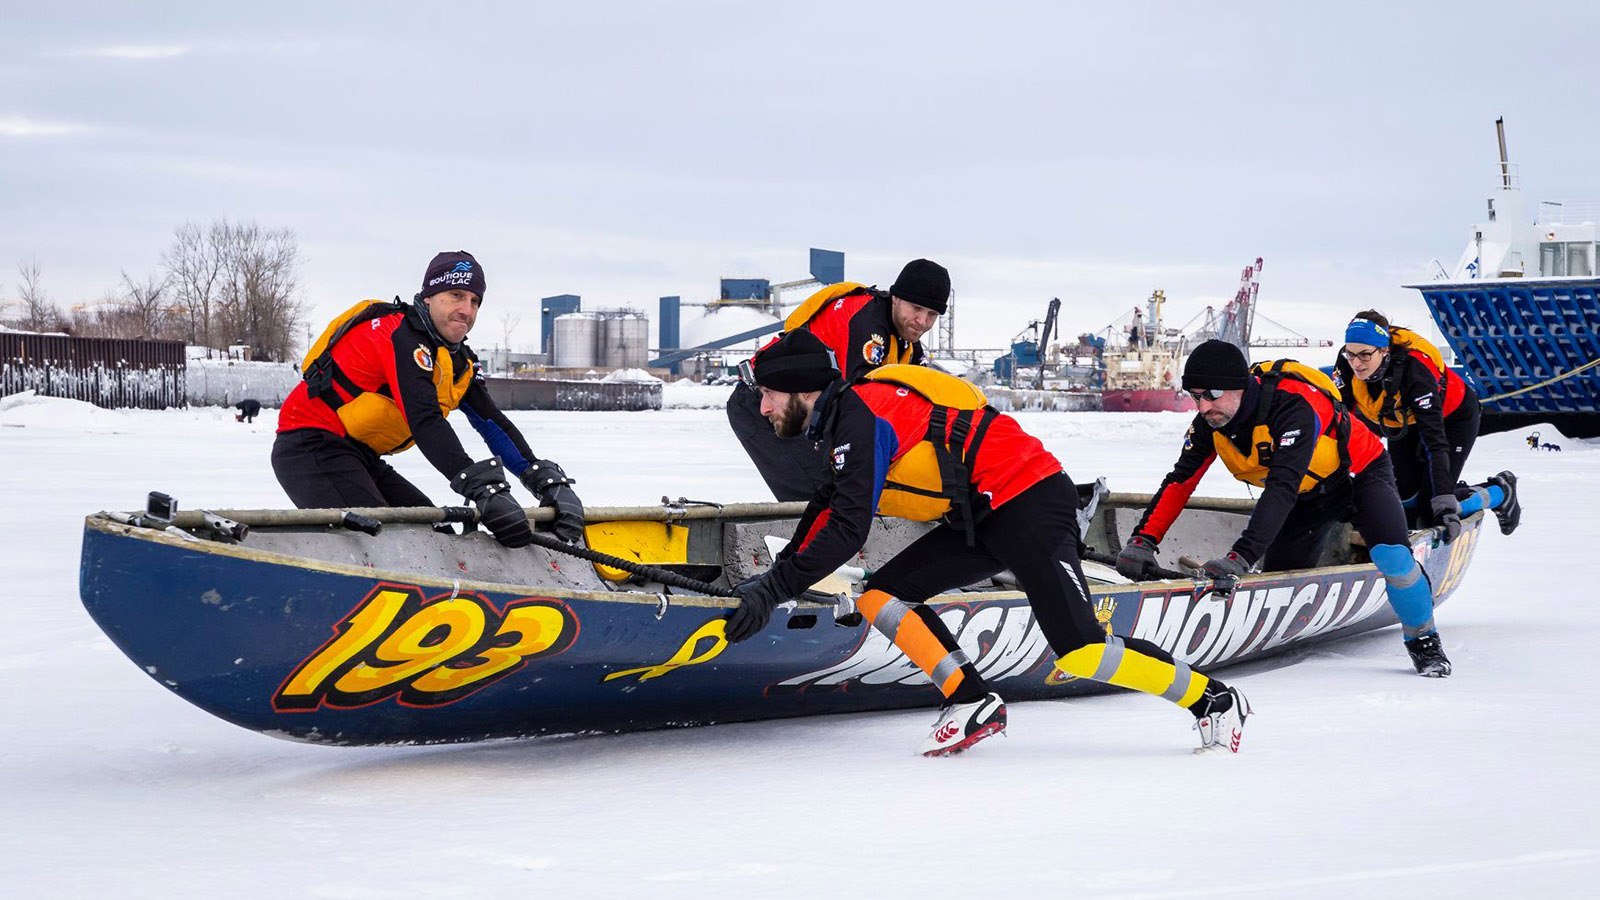 Slide - HMCS Montcalm's Ice Canoe Team